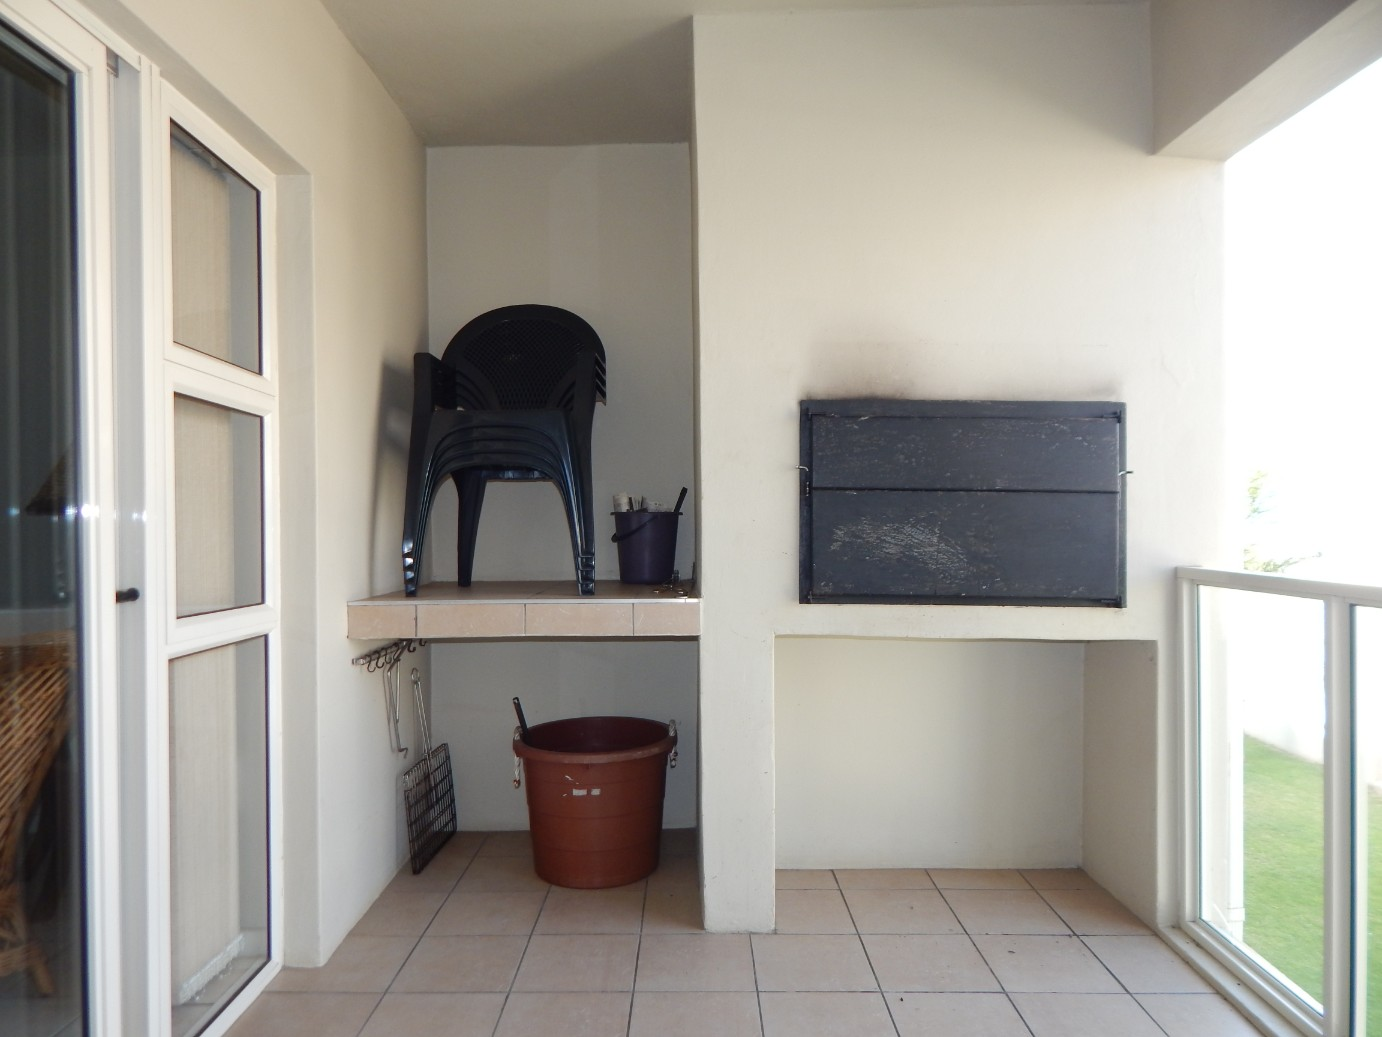 3 Bedroom Apartment for sale in Diaz Beach ENT0080239 : photo#21